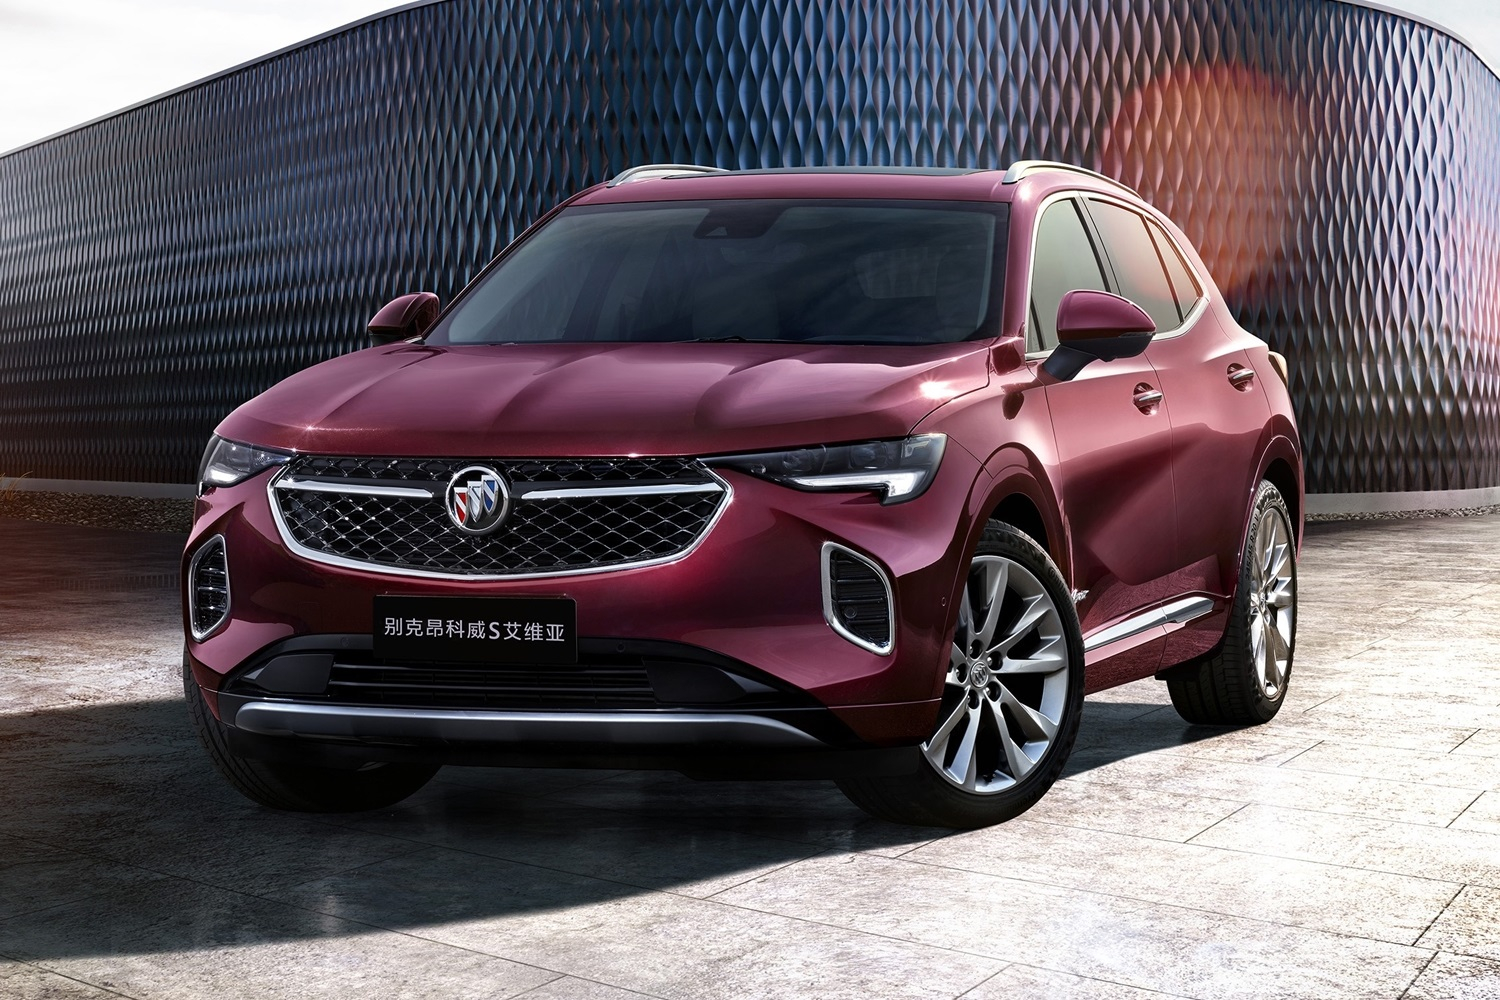 Range-Topping 2021 Buick Envision Avenir Revealed | Gm Authority New 2022 Buick Enclave Dimensions, Colors, Accessories